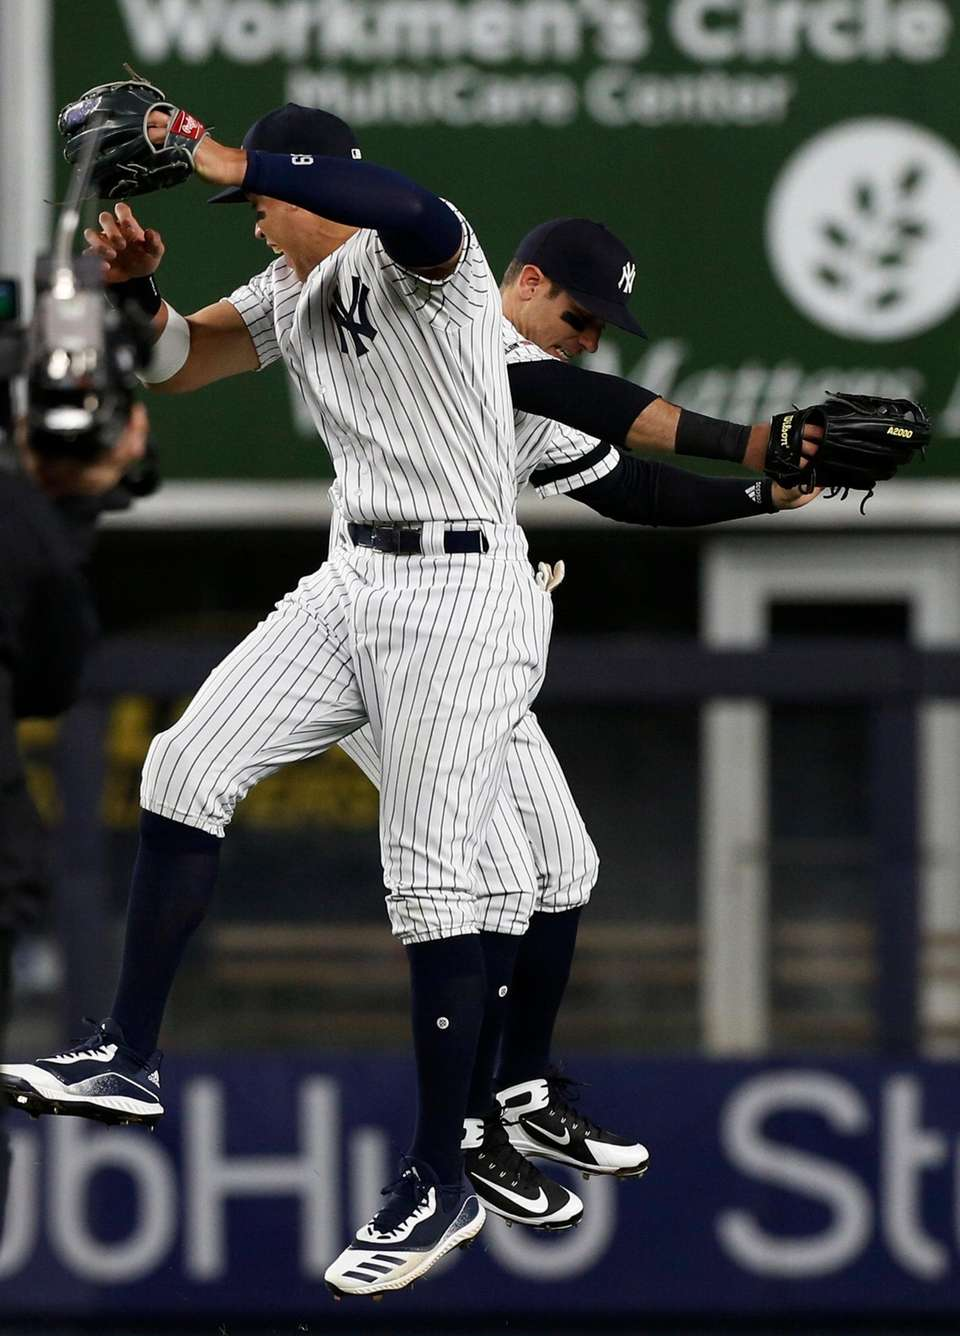 Aaron Judge #99 and Mike Tauchman #39 of